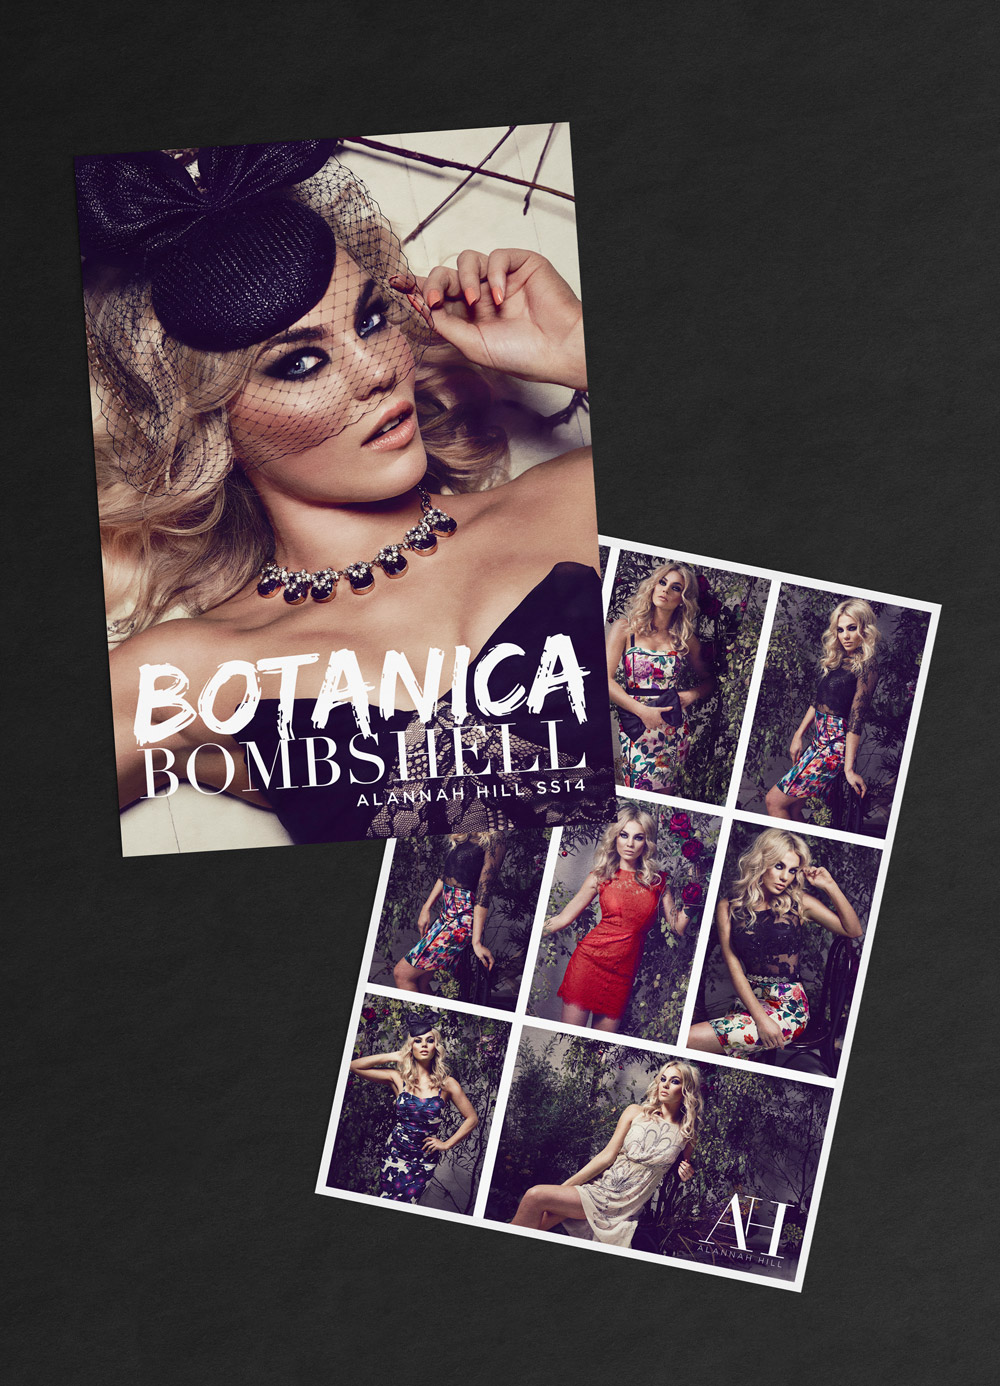 """Botanica Bombshell"" promotional card for Alannah Hill, a famous luxury fashion brand from Melbourne, Australia."